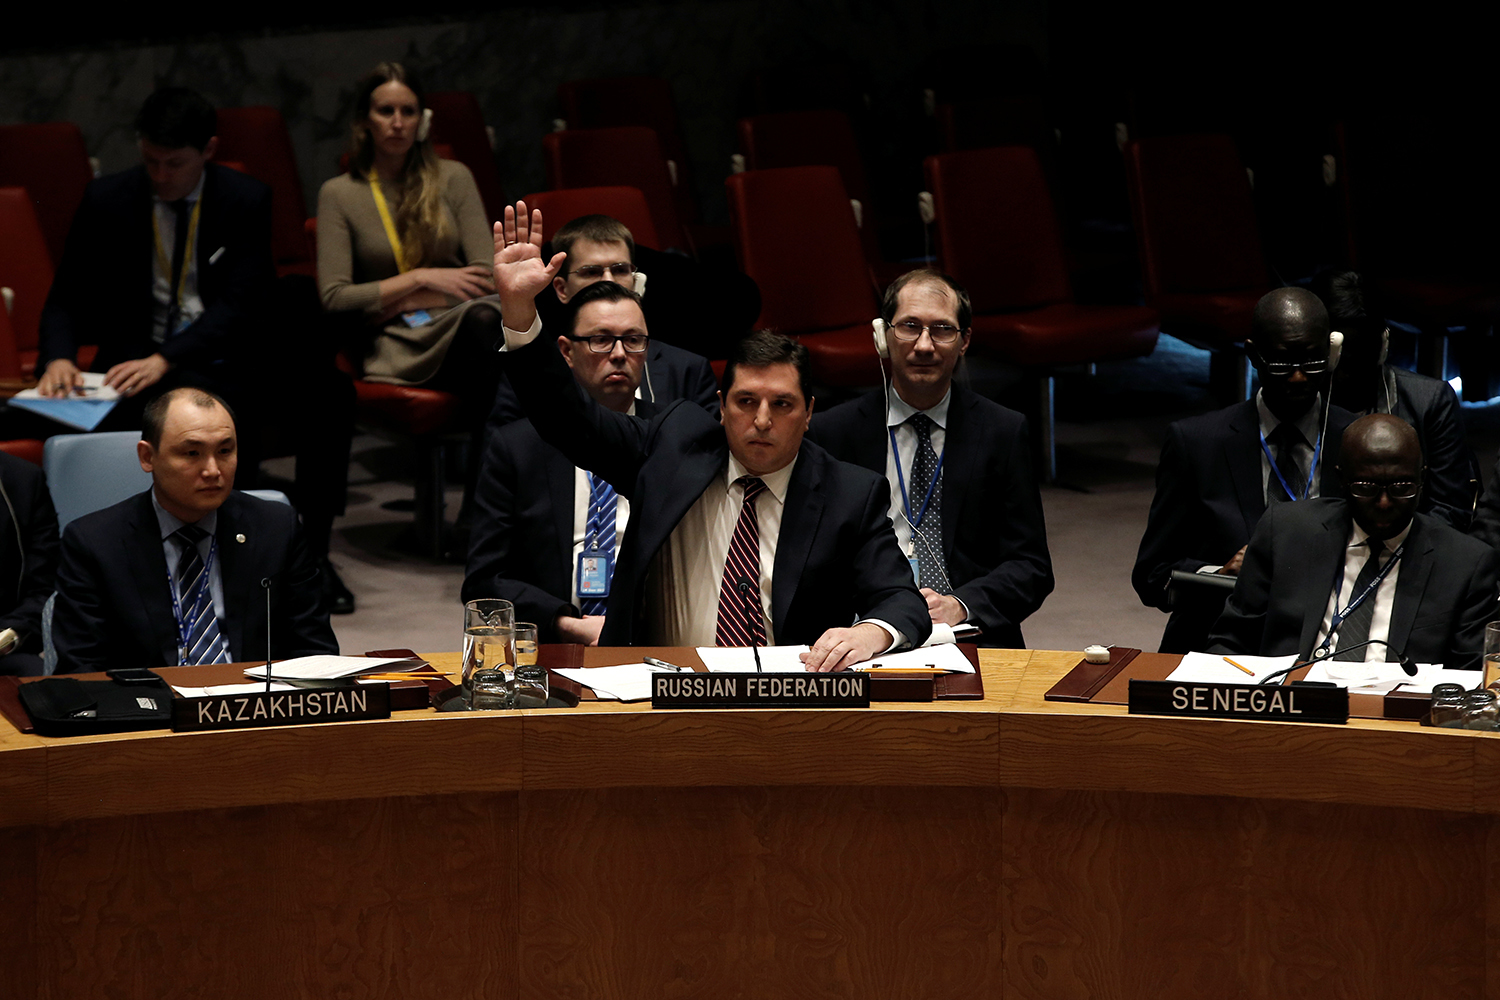 NEW YORK 2017-02-28 Russian Deputy Ambassador to the United Nations Vladimir Safronkov raises his arm to vote against a United Nations Security Council resolution to ban the supply of helicopters to the Syrian government and to blacklist Syrian military commanders over accusations of toxic gas attacks at U.N. headquarters in New York City, U.S., February 28, 2017. REUTERS/Mike Segar TPX IMAGES OF THE DAY Photo: / REUTERS / TT / kod 72000